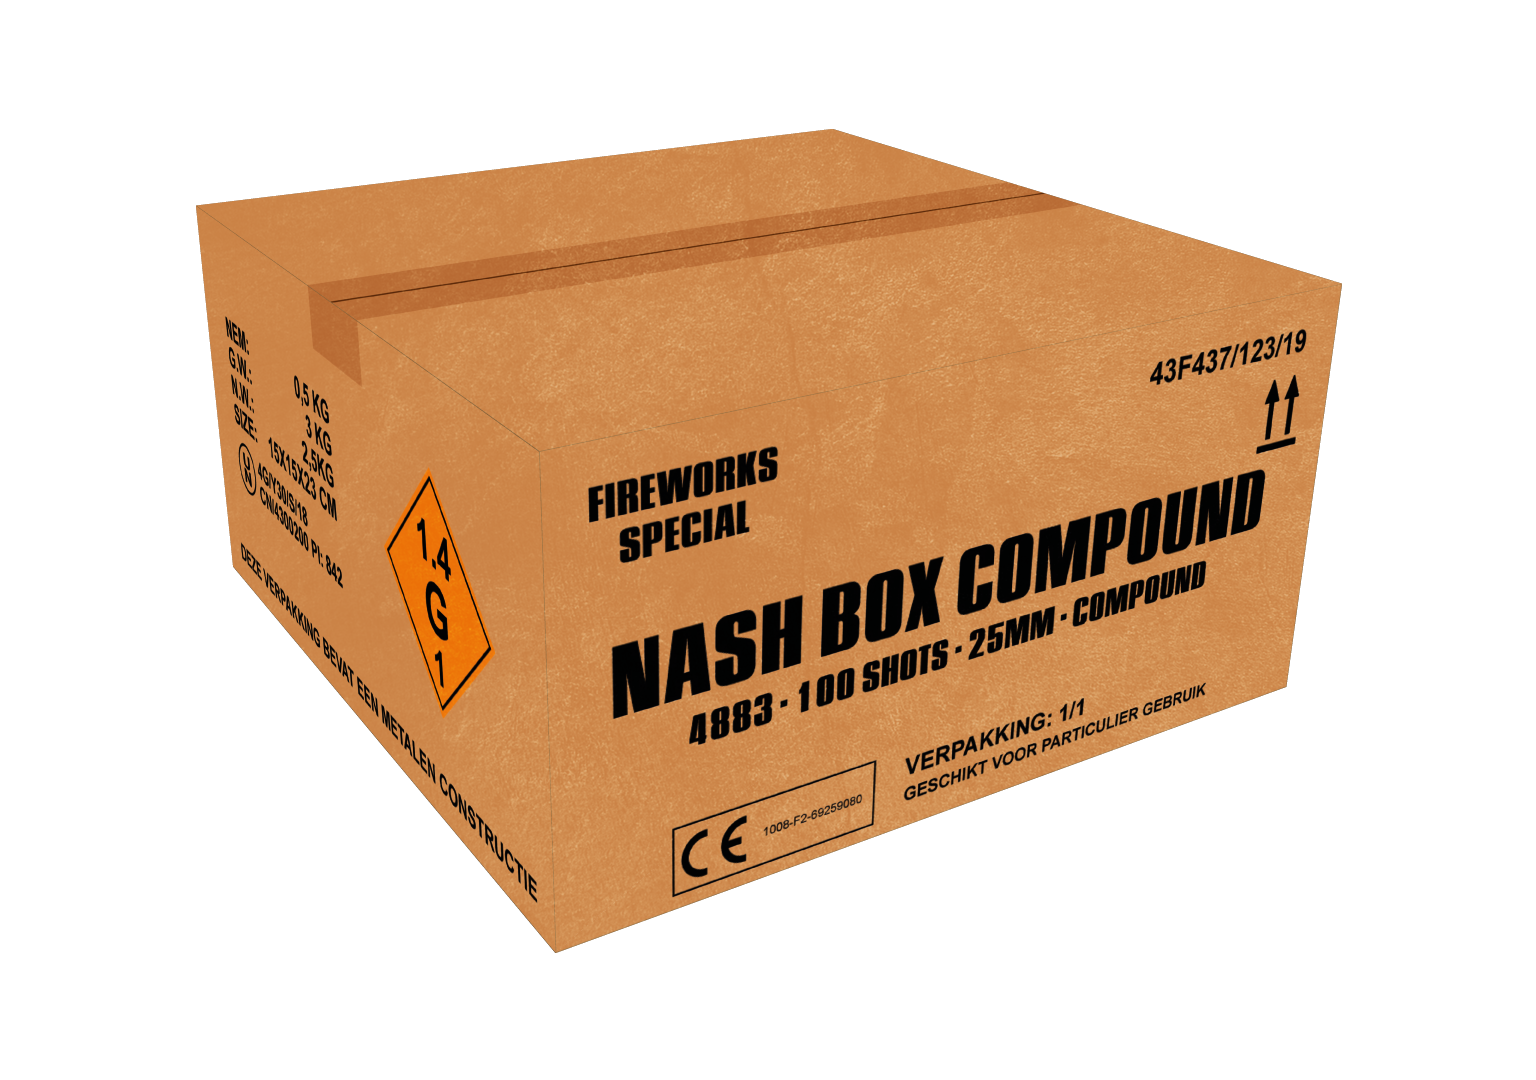 ART. 4883 NASH BOX, 100 SHOTS 25 MM COMPOUND NIEUW!